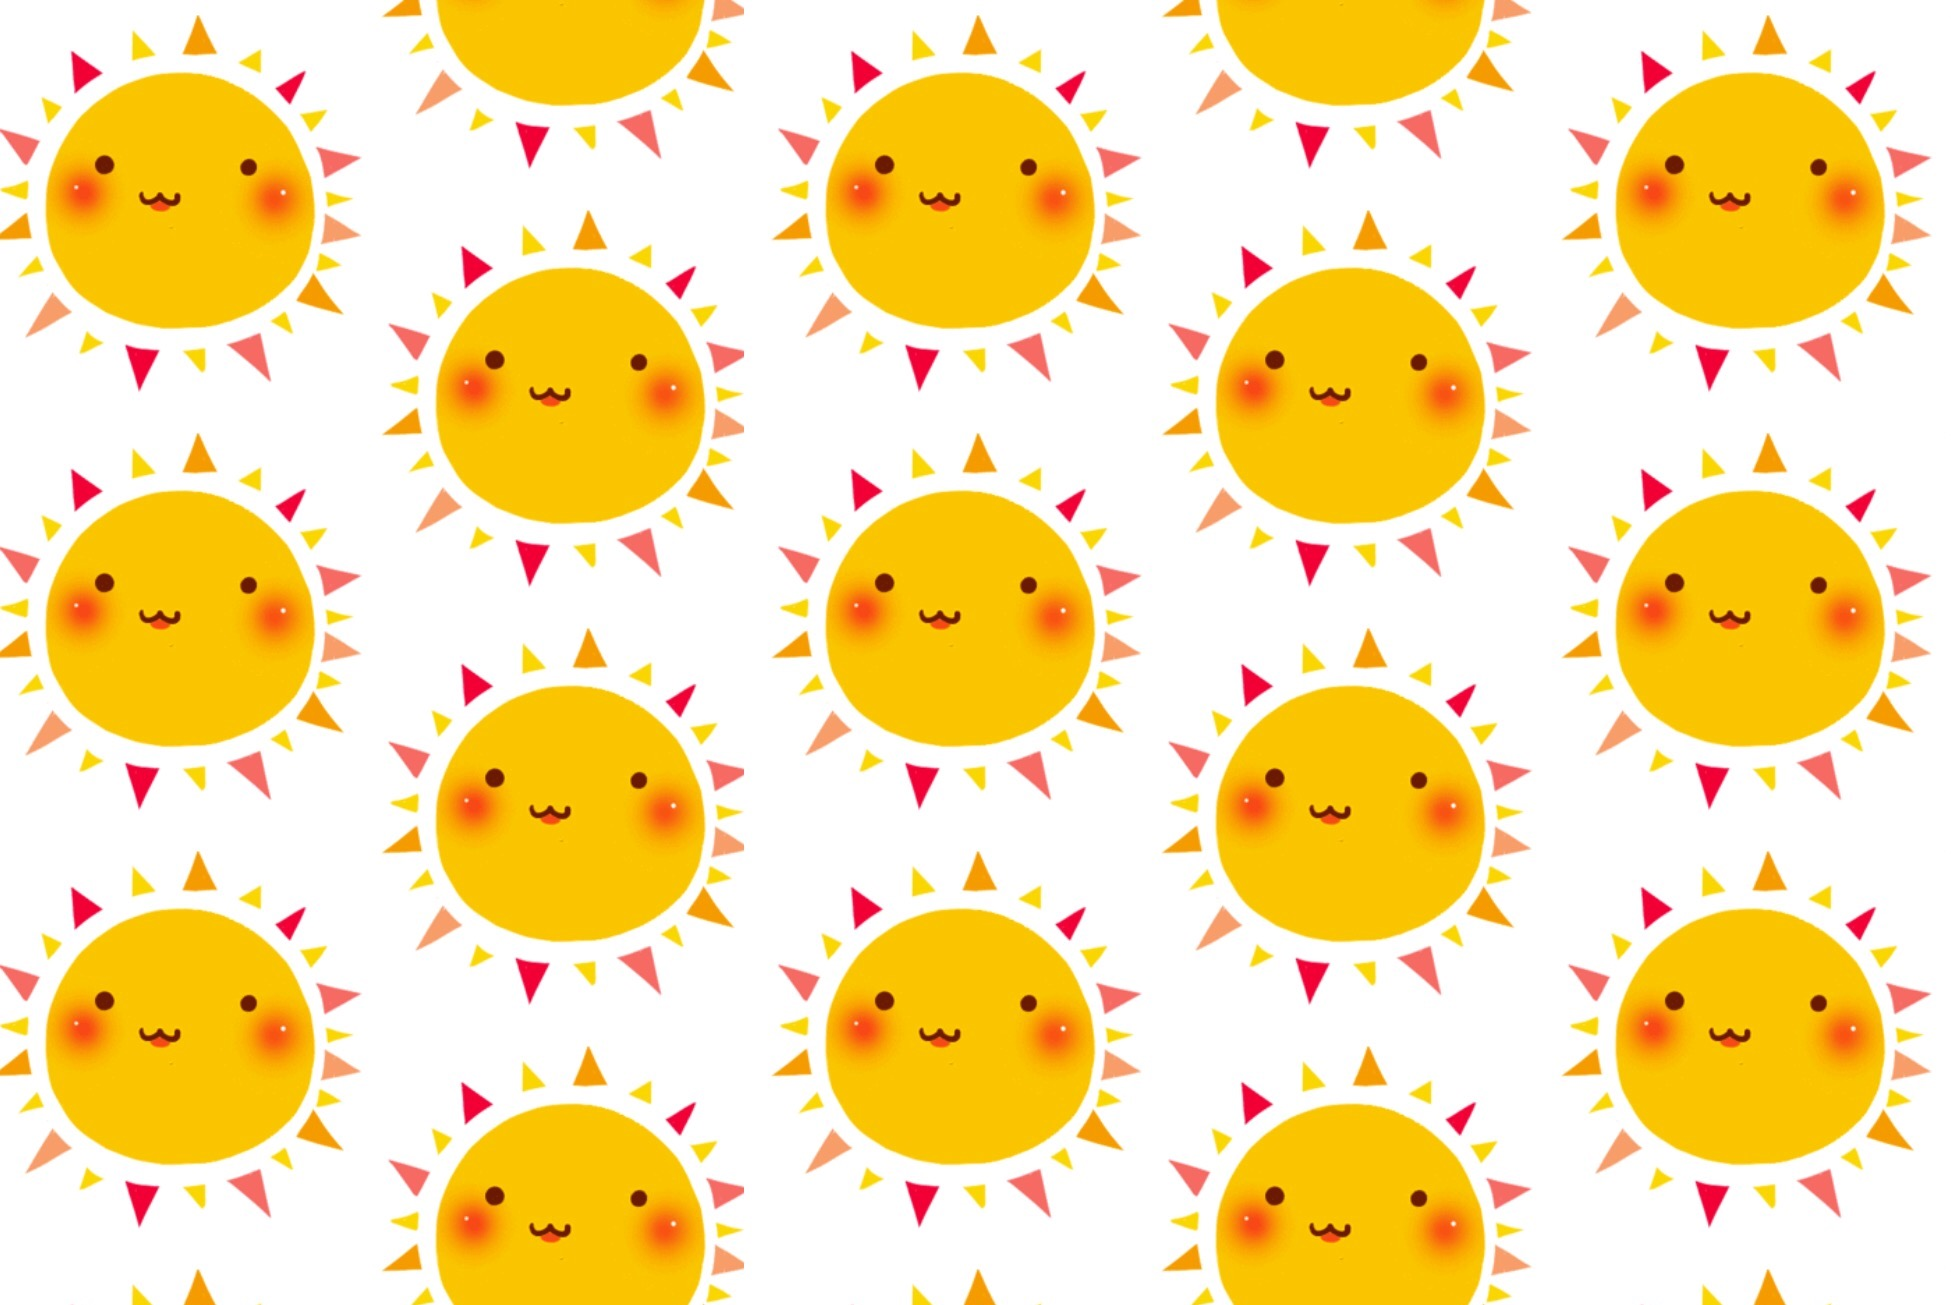 Happy suns wallpaper